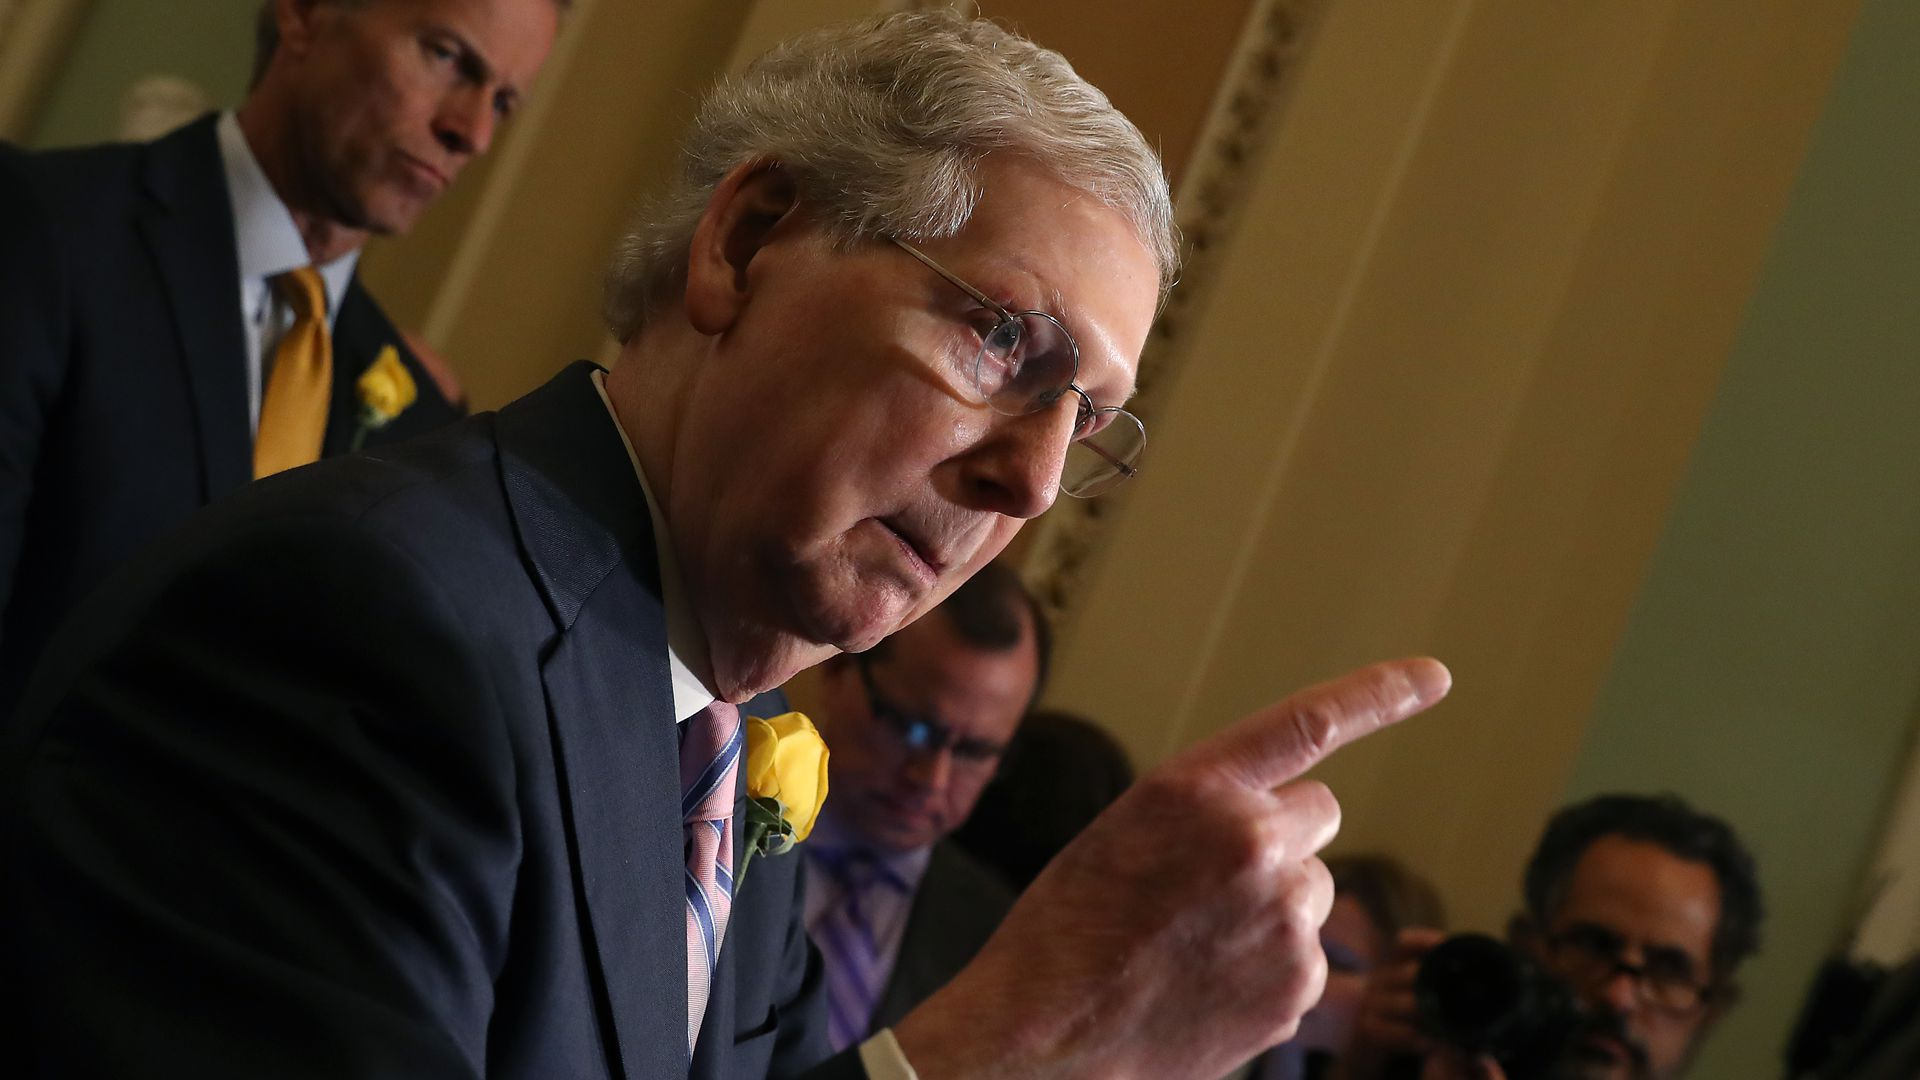 In this image, McConnell speaks while pointing a finger.